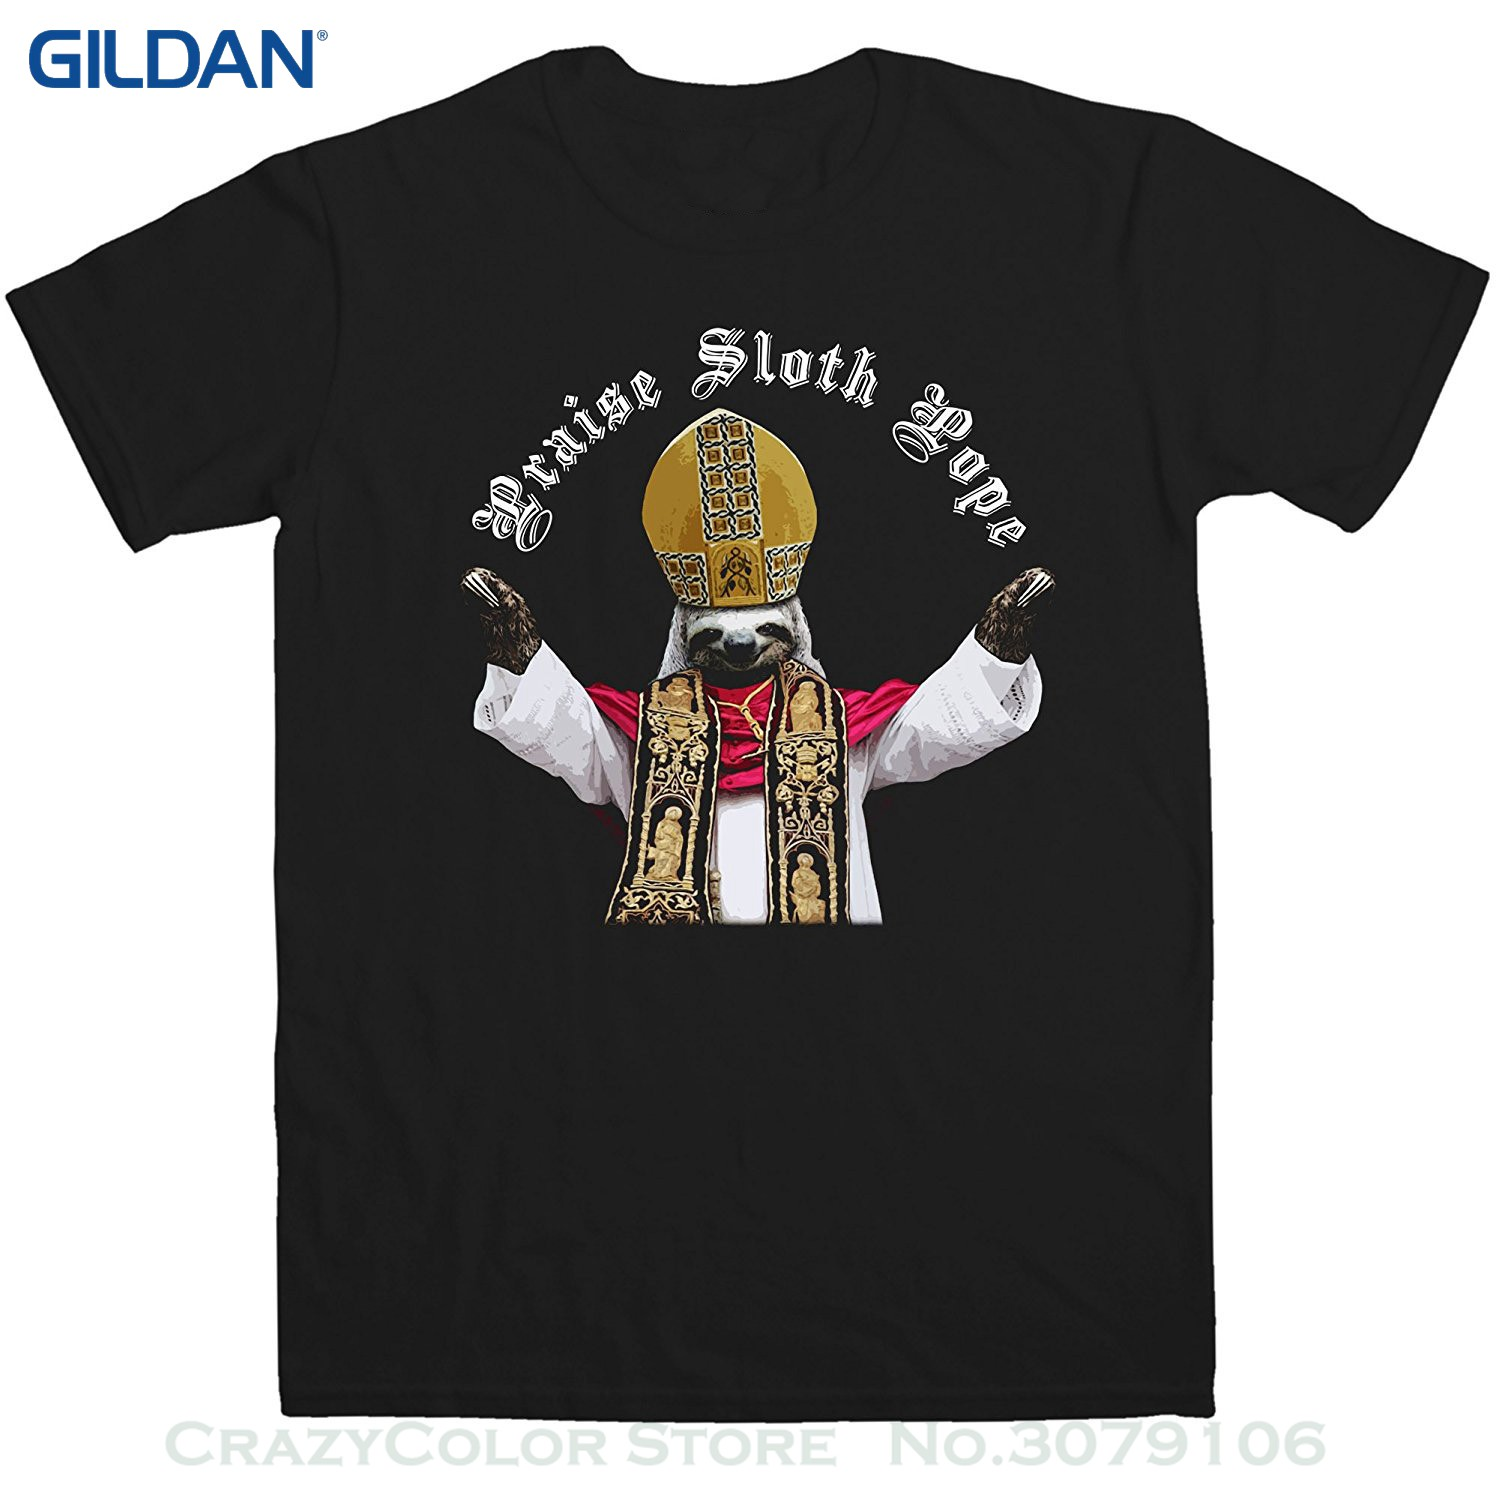 GILDAN Free Shipping Summer Fashion Mens Sloth T Shirt - Sloth Pope - 8ball Originals Te ...